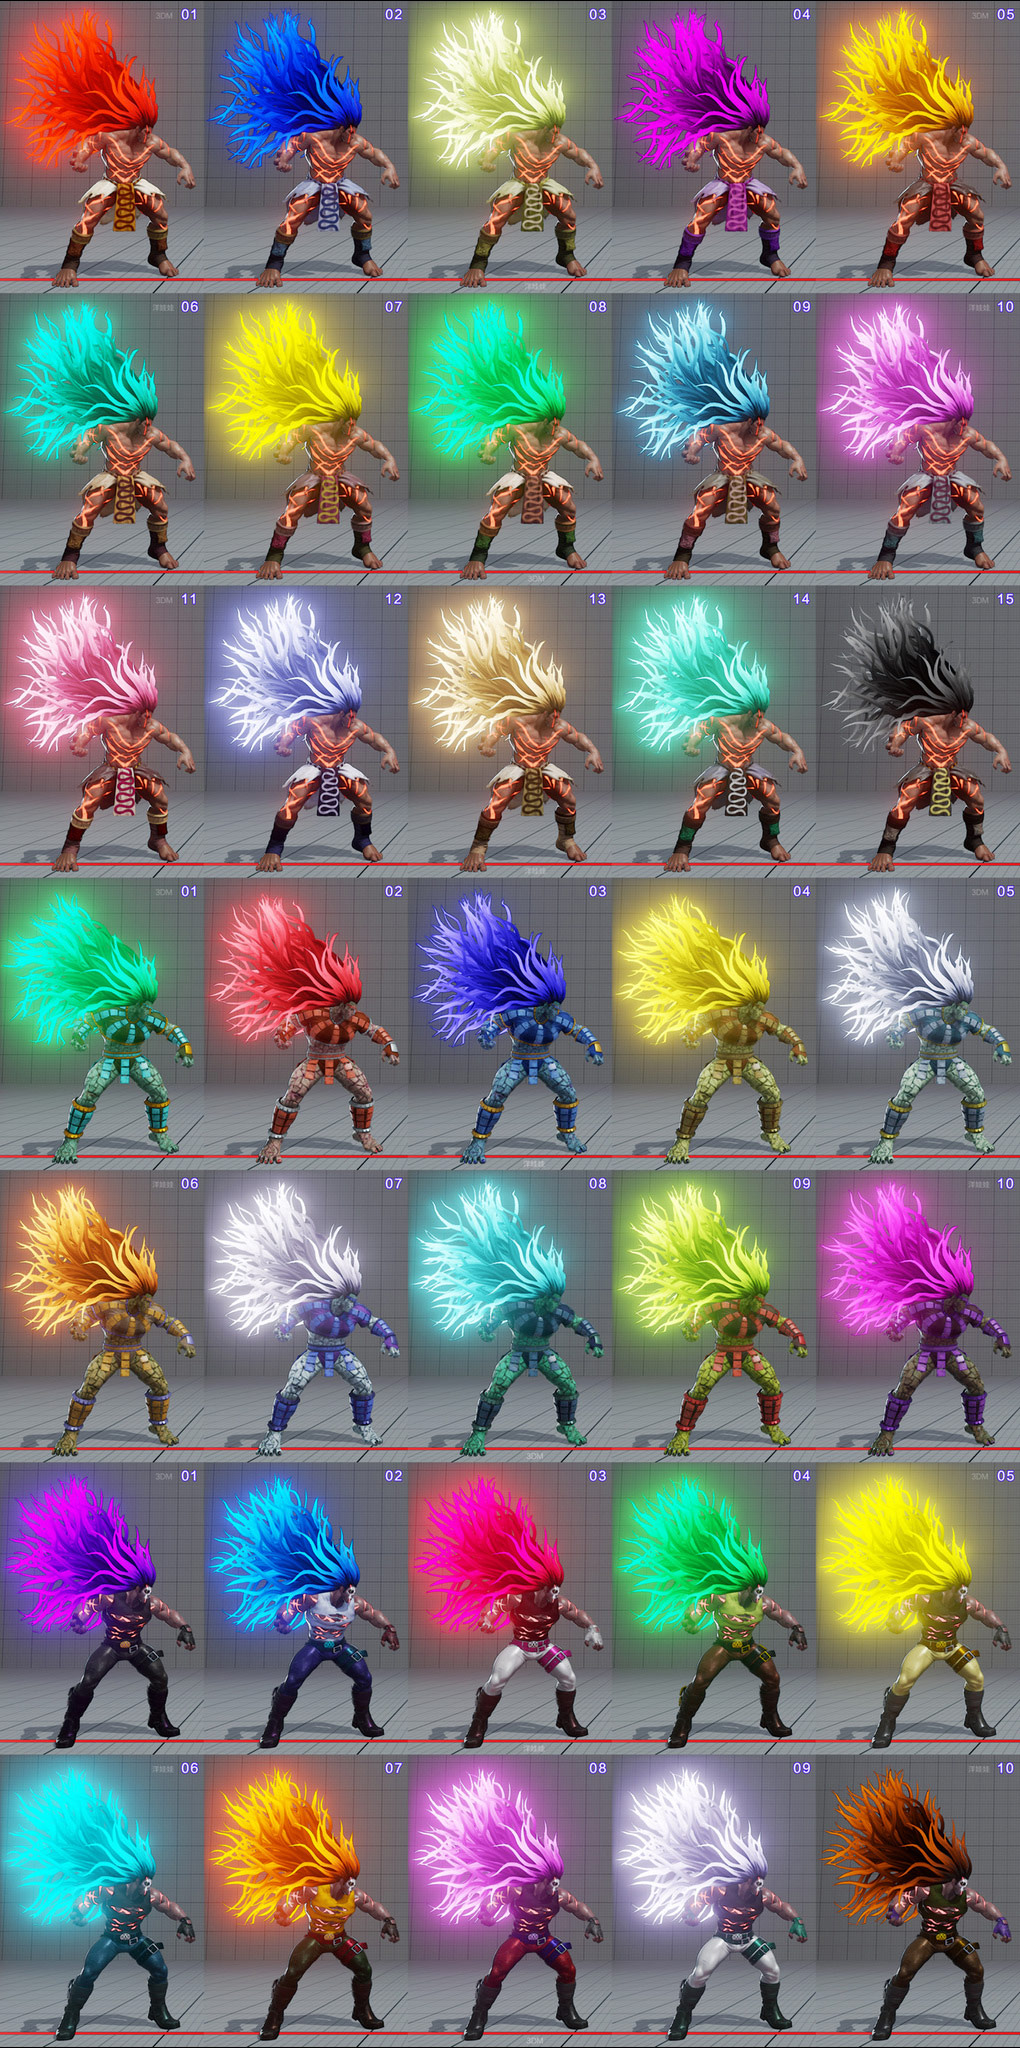 All colors for all current costumes in Street Fighter 5 16 out of 18 image gallery